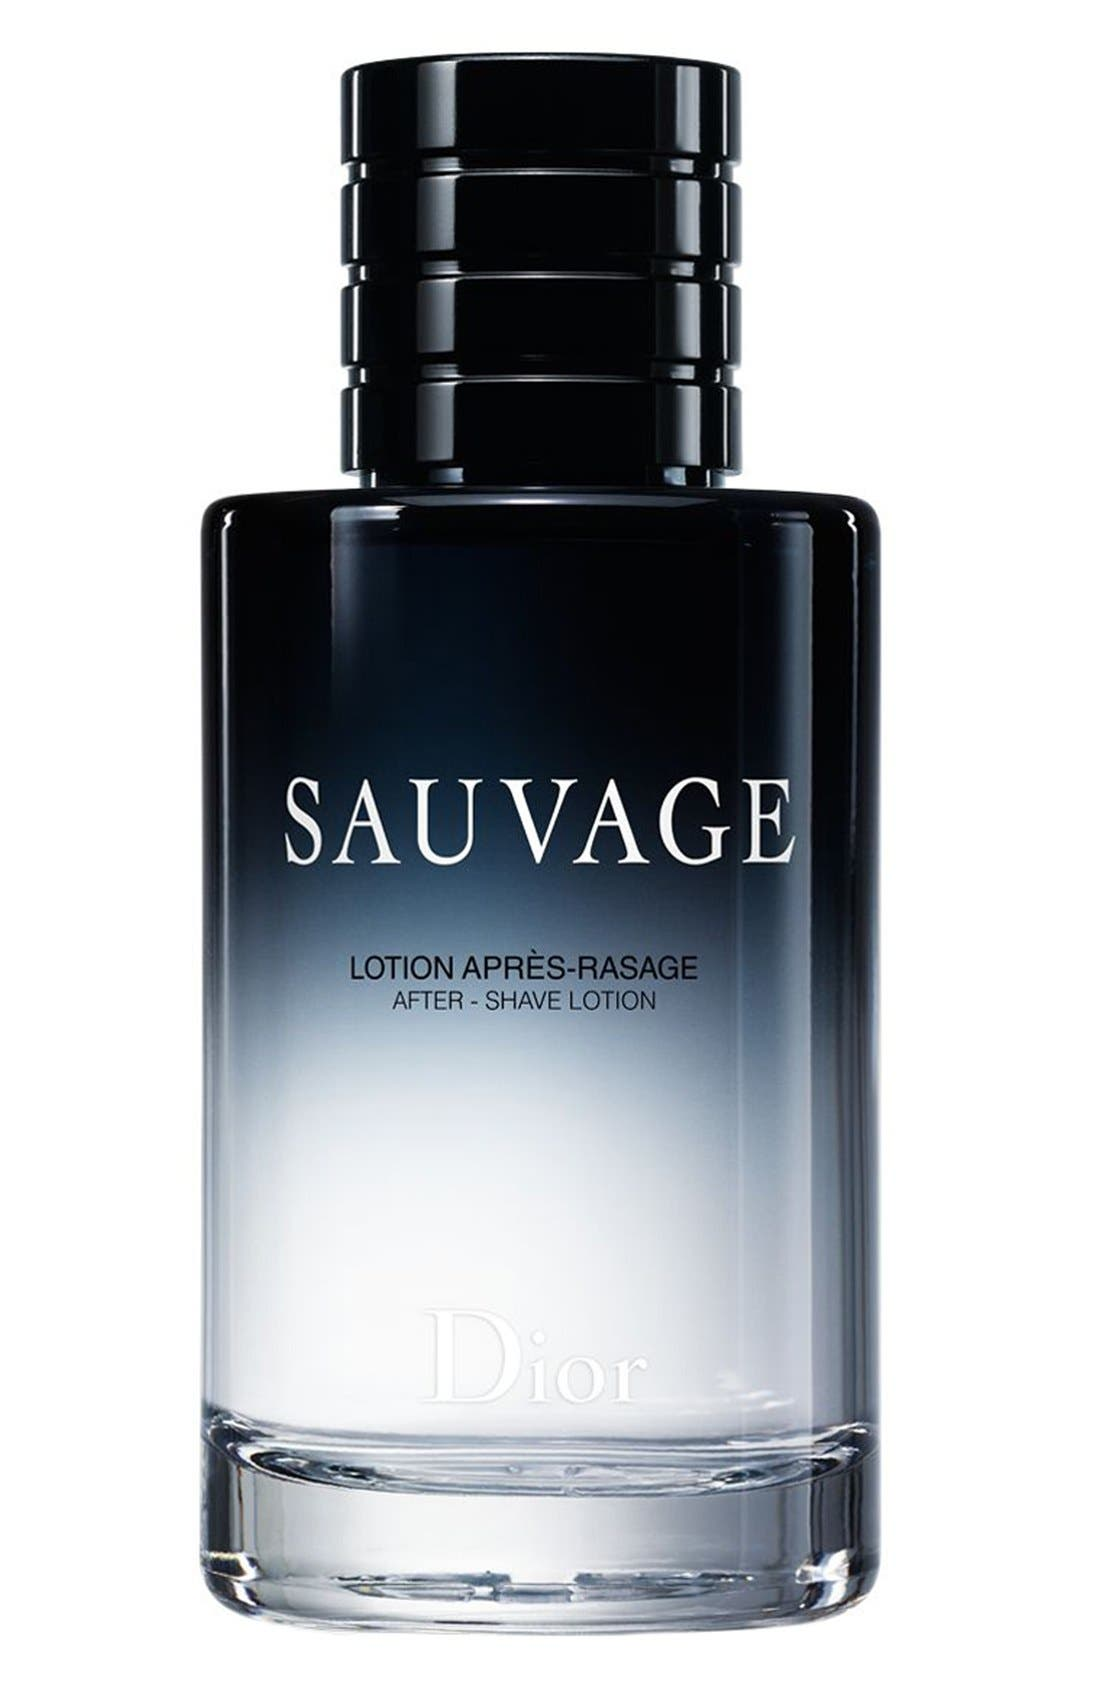 Dior 'Sauvage' After-Shave Lotion